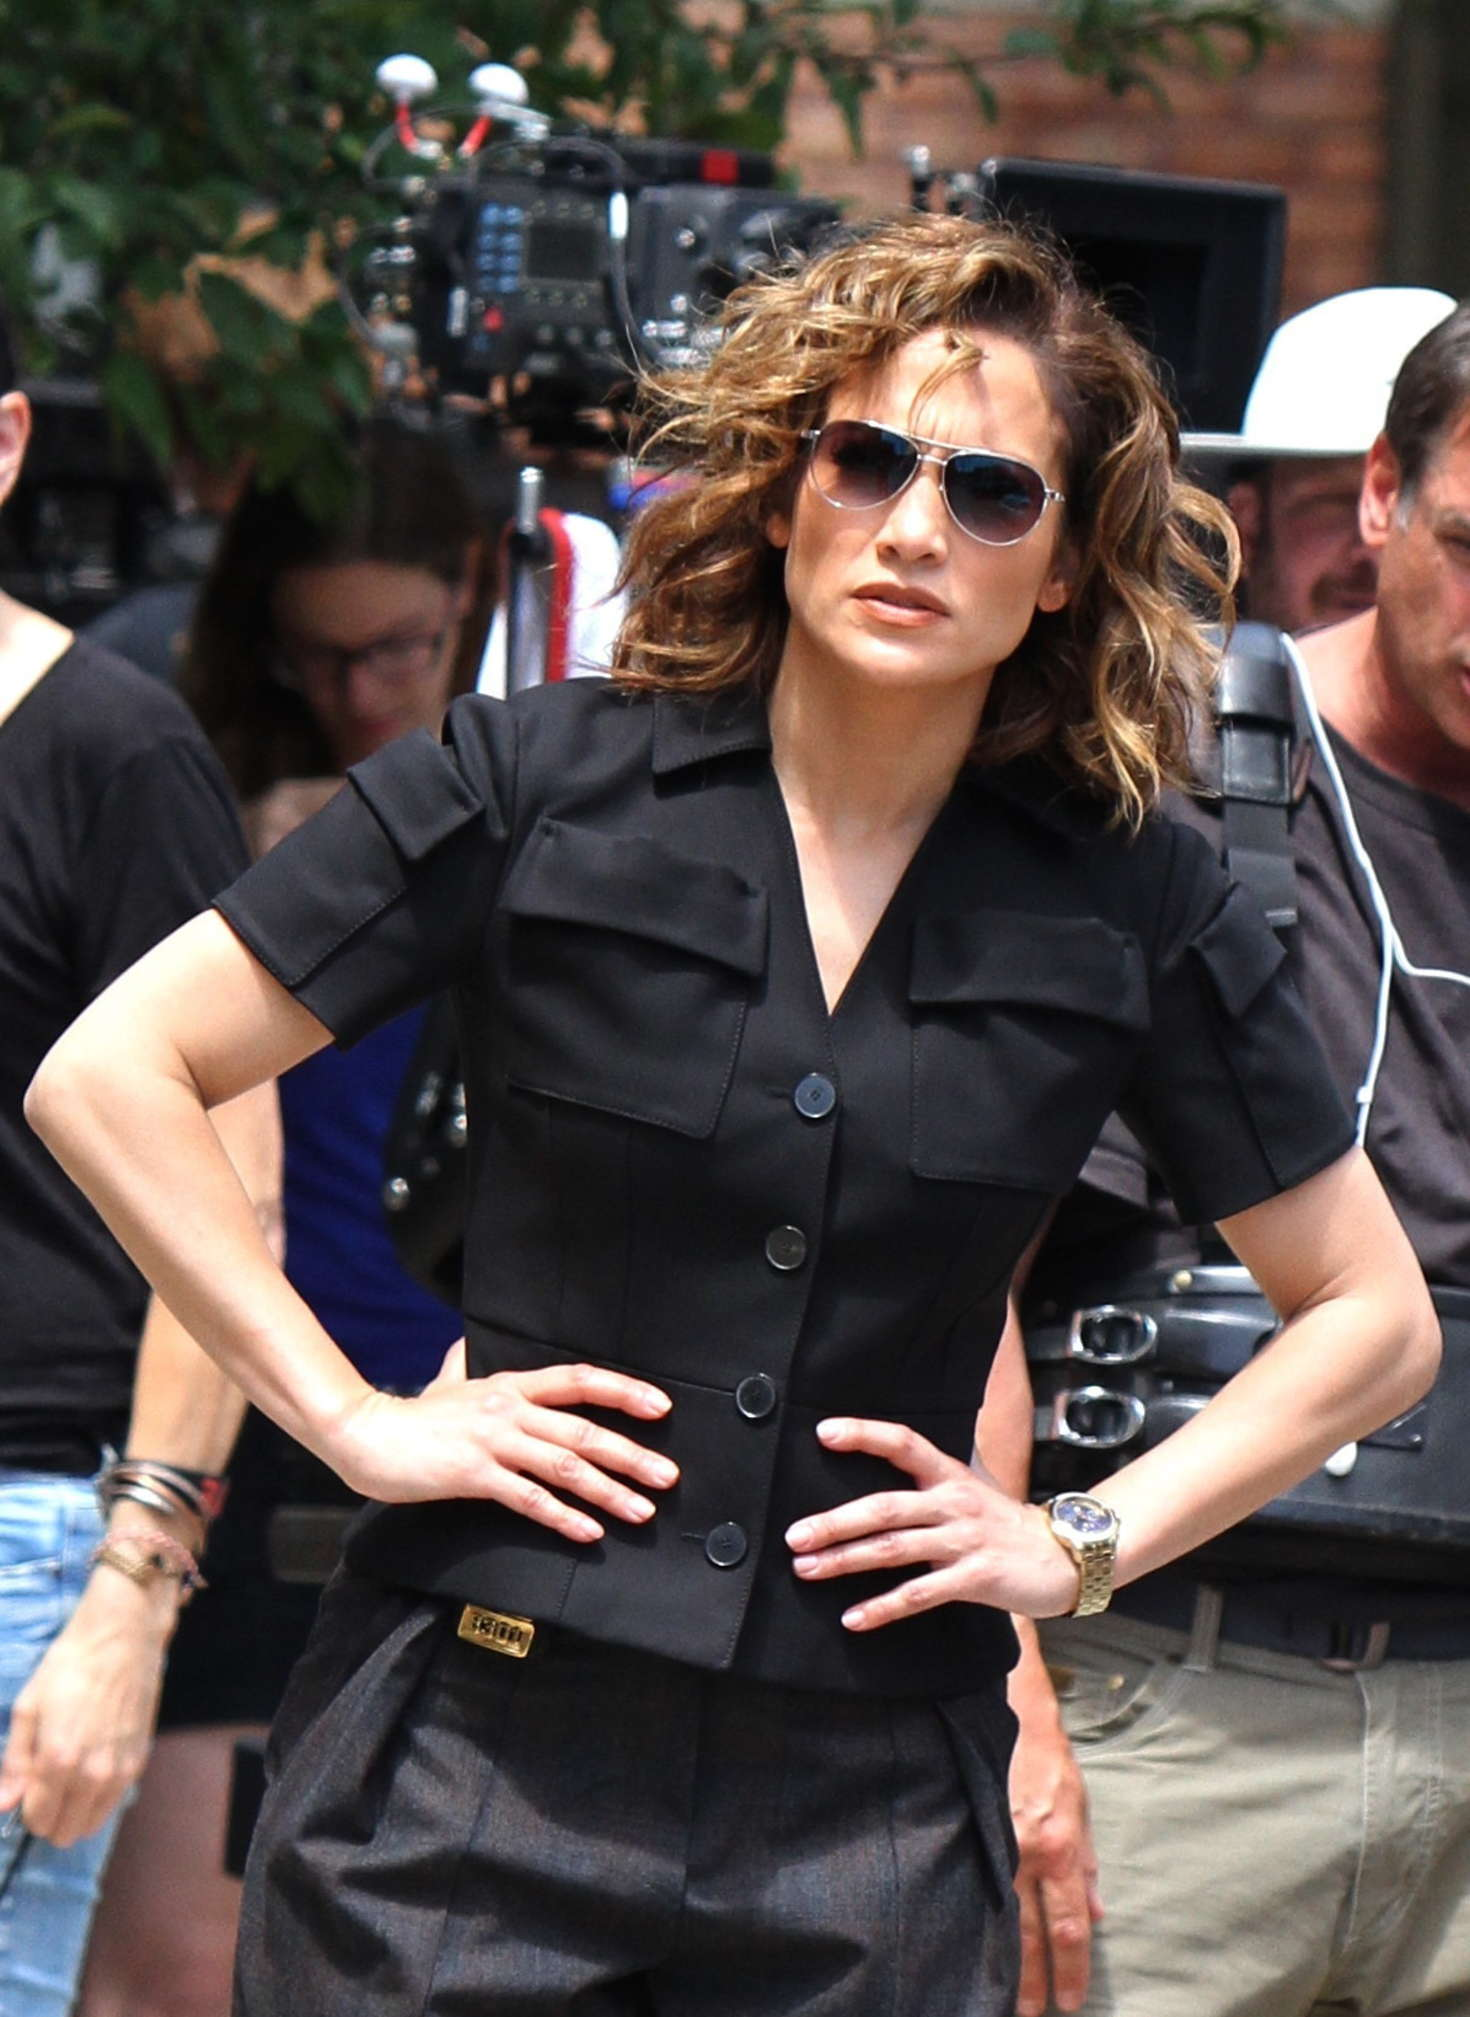 Jennifer Lopez Filming scenes for 'Shades of Blue' in Astoria